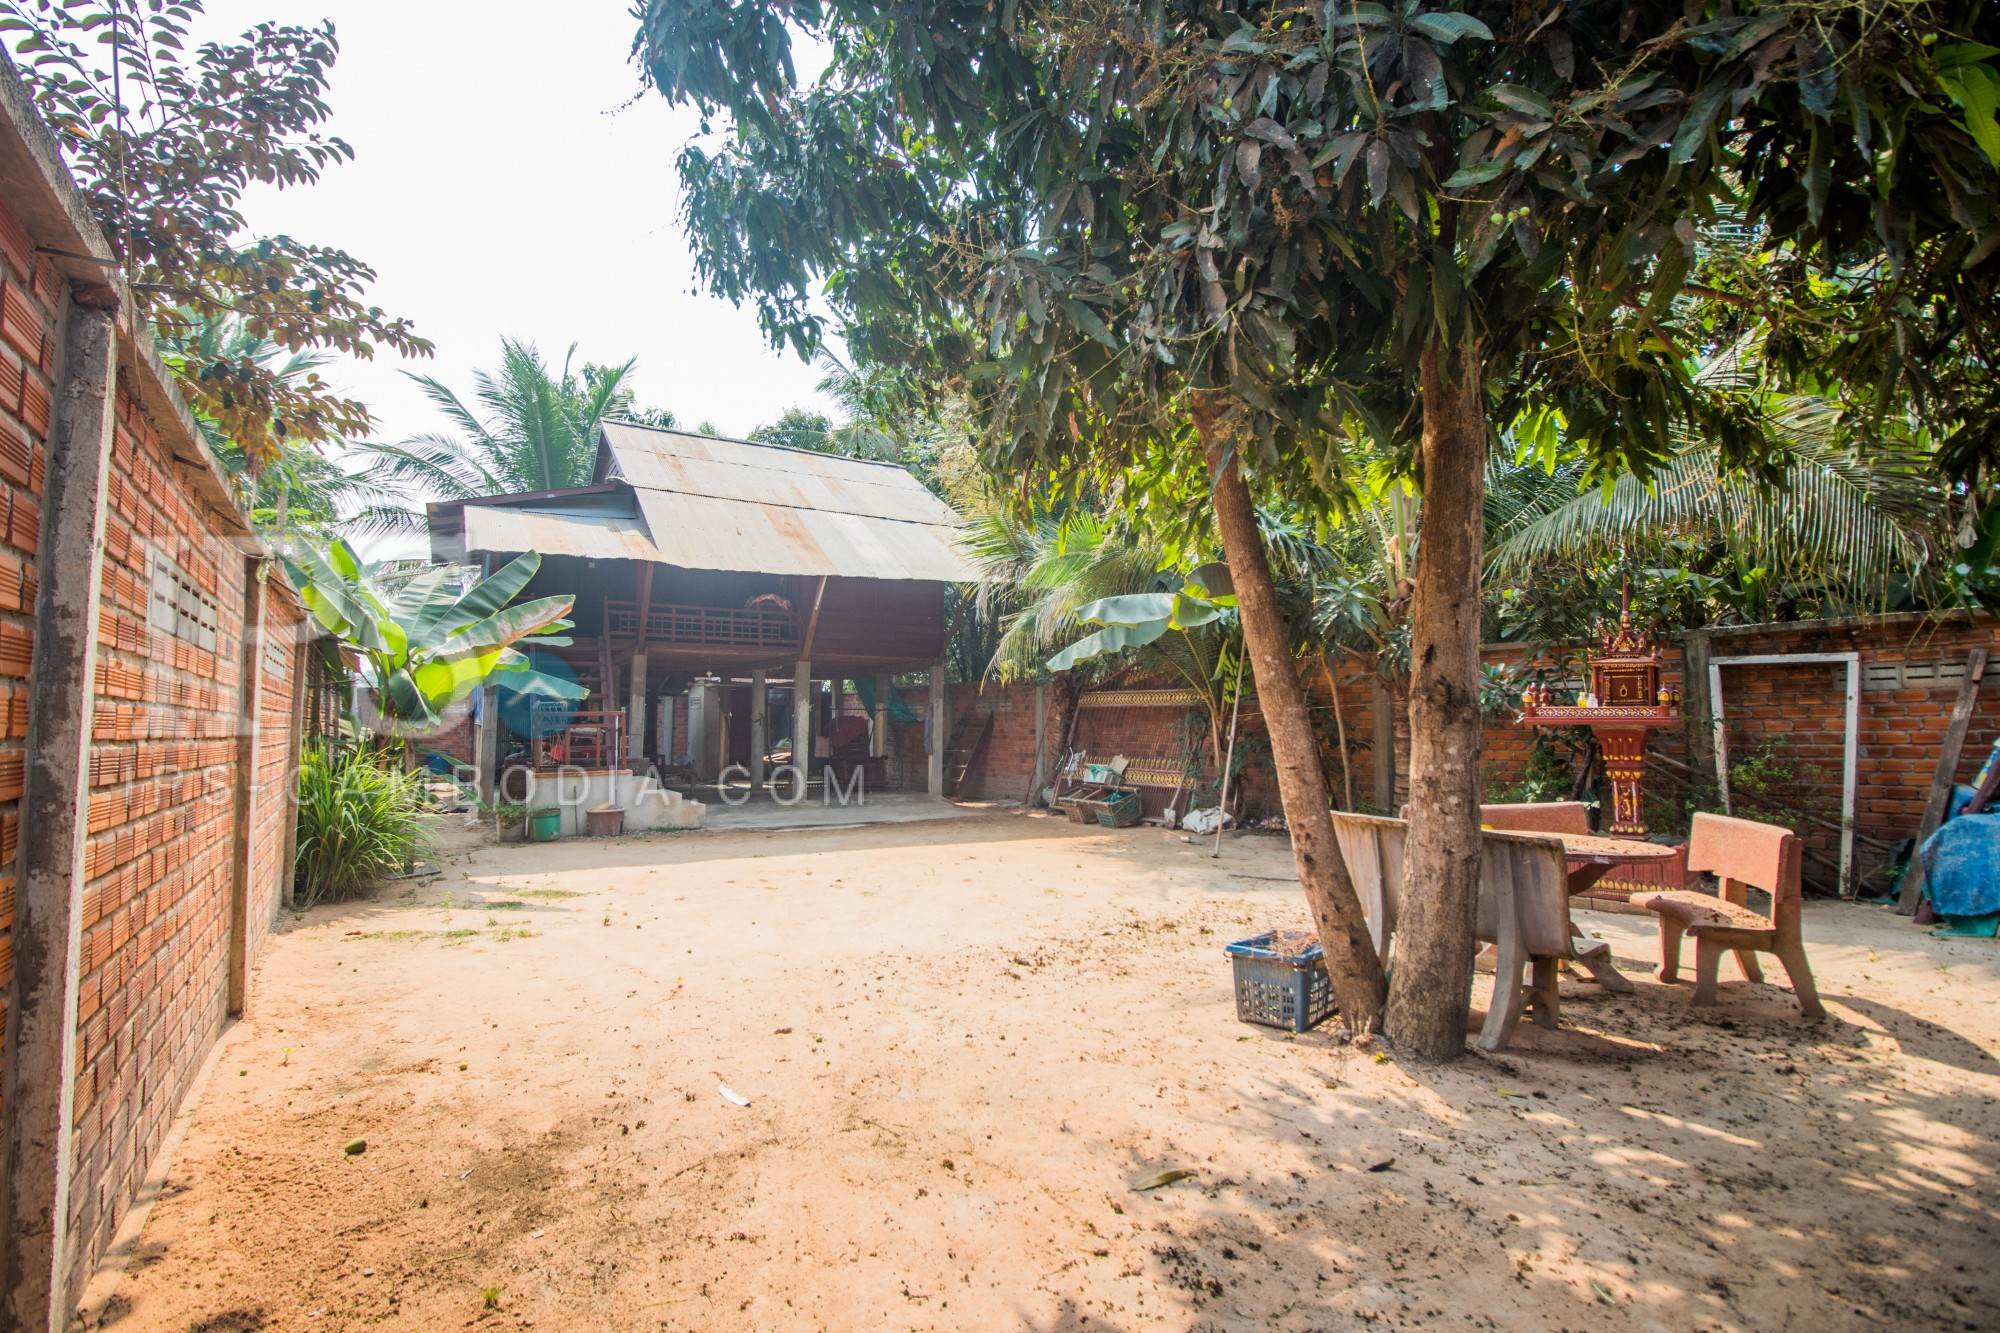 180 Sqm Residential Land For Sale - Sambour, Siem Reap